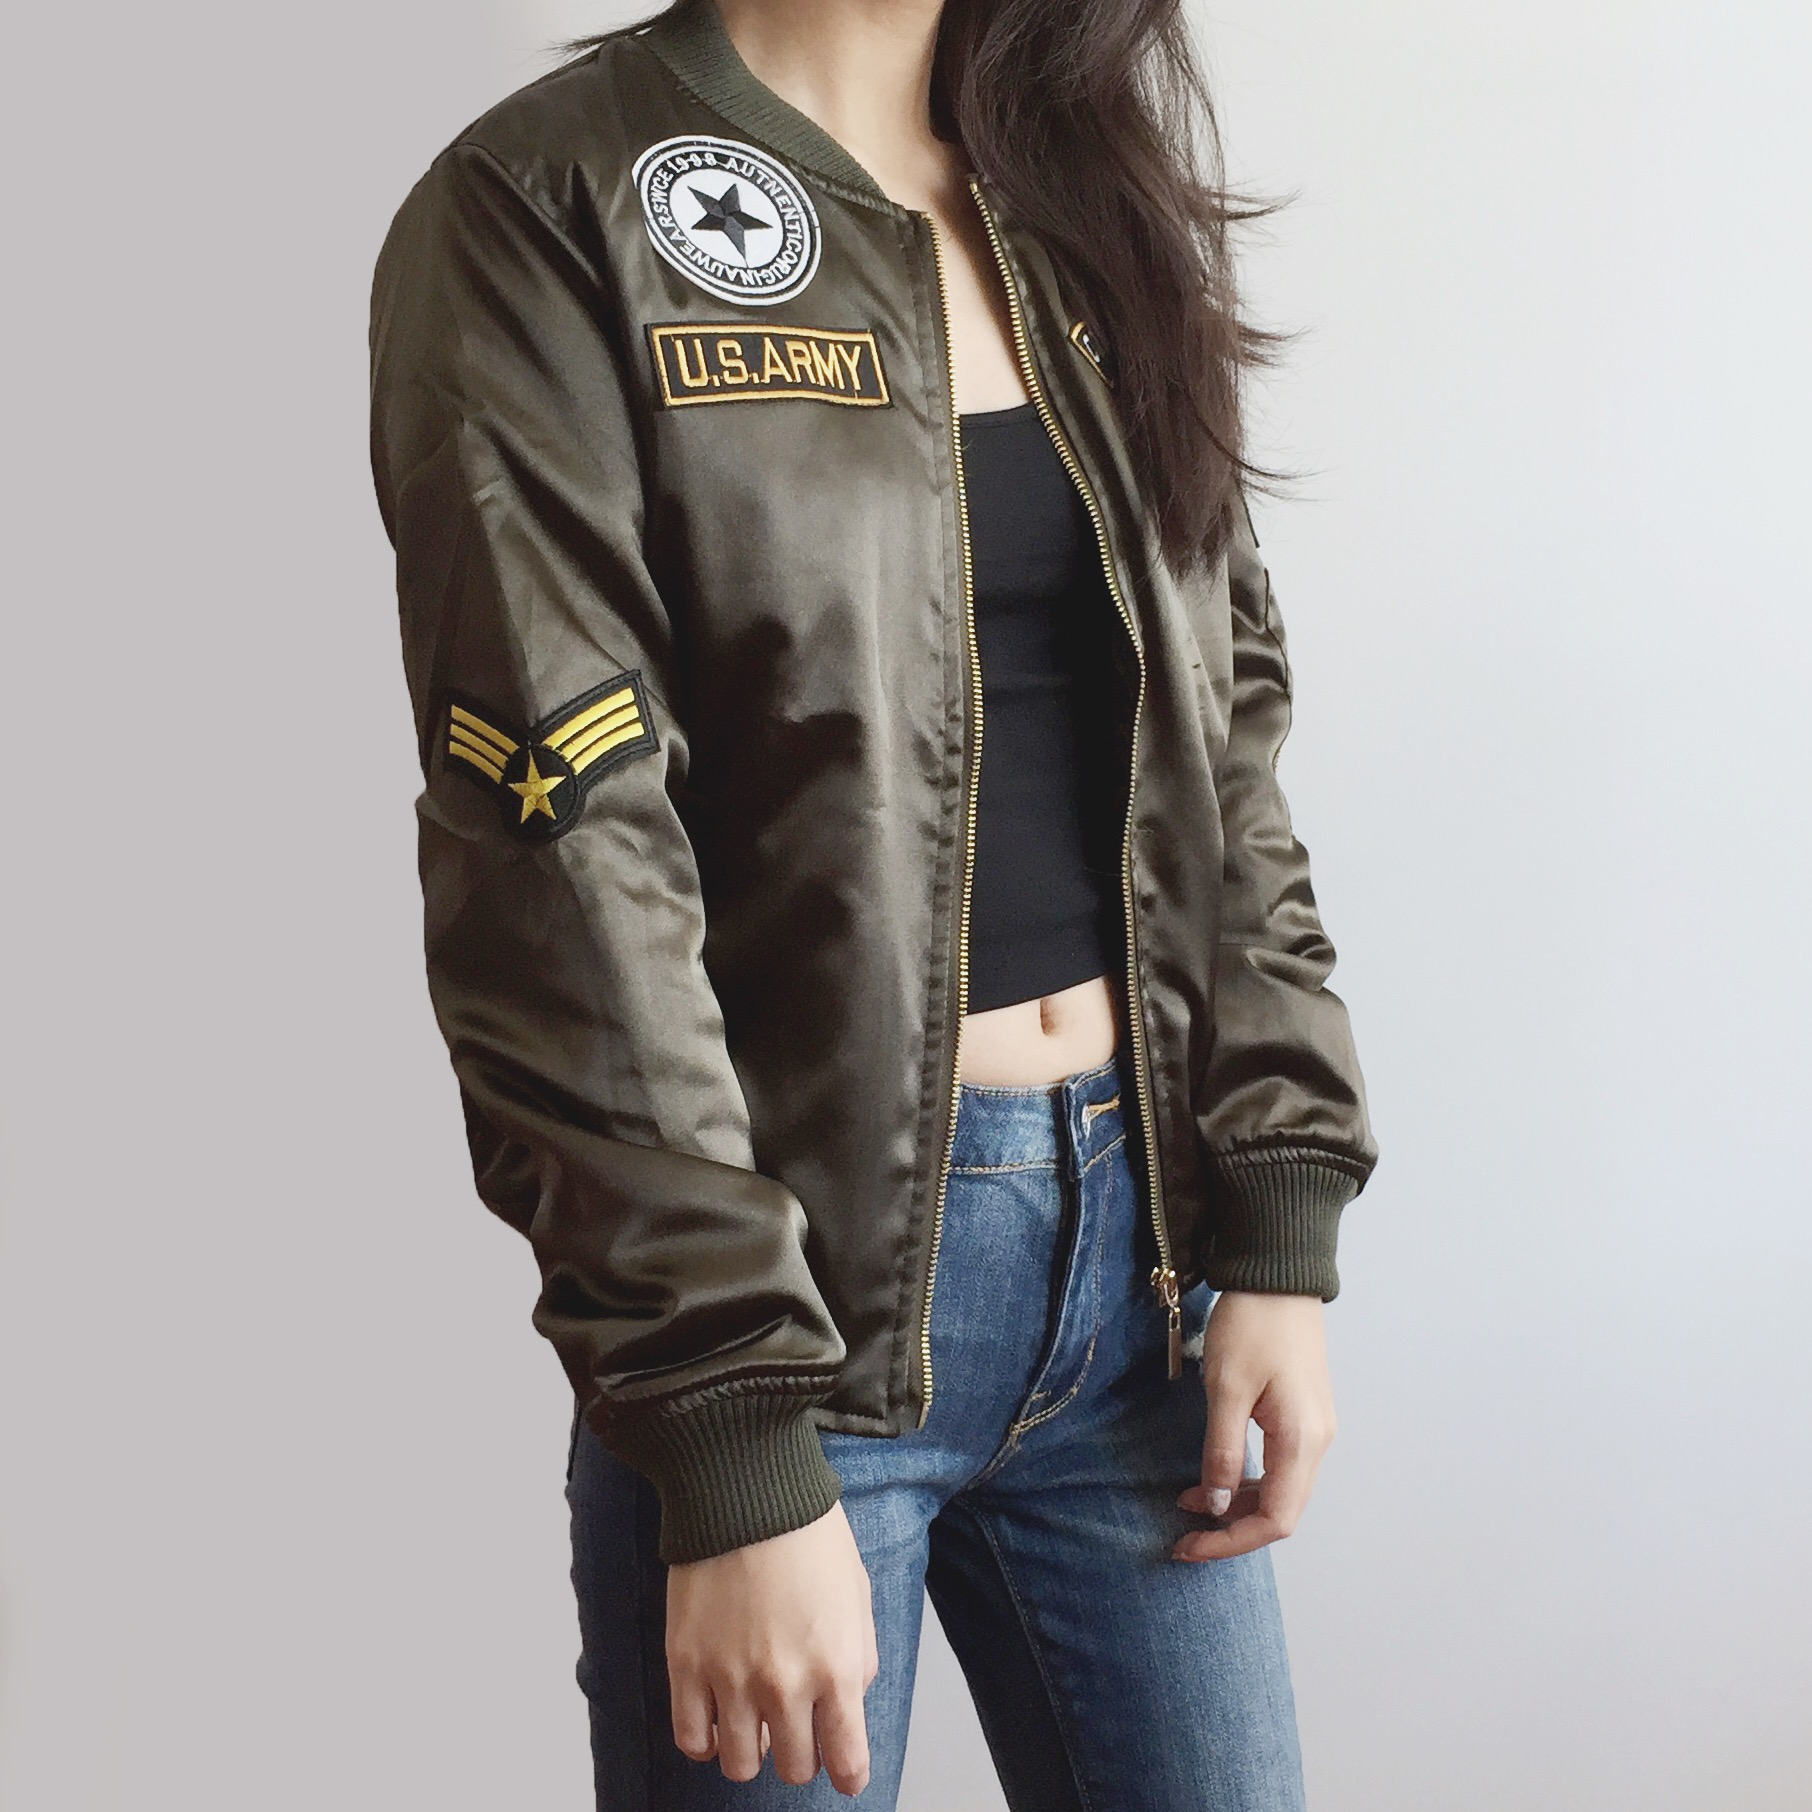 abef2f6c3 Army Patch Bomber Jacket (Olive) from Megoosta Fashion